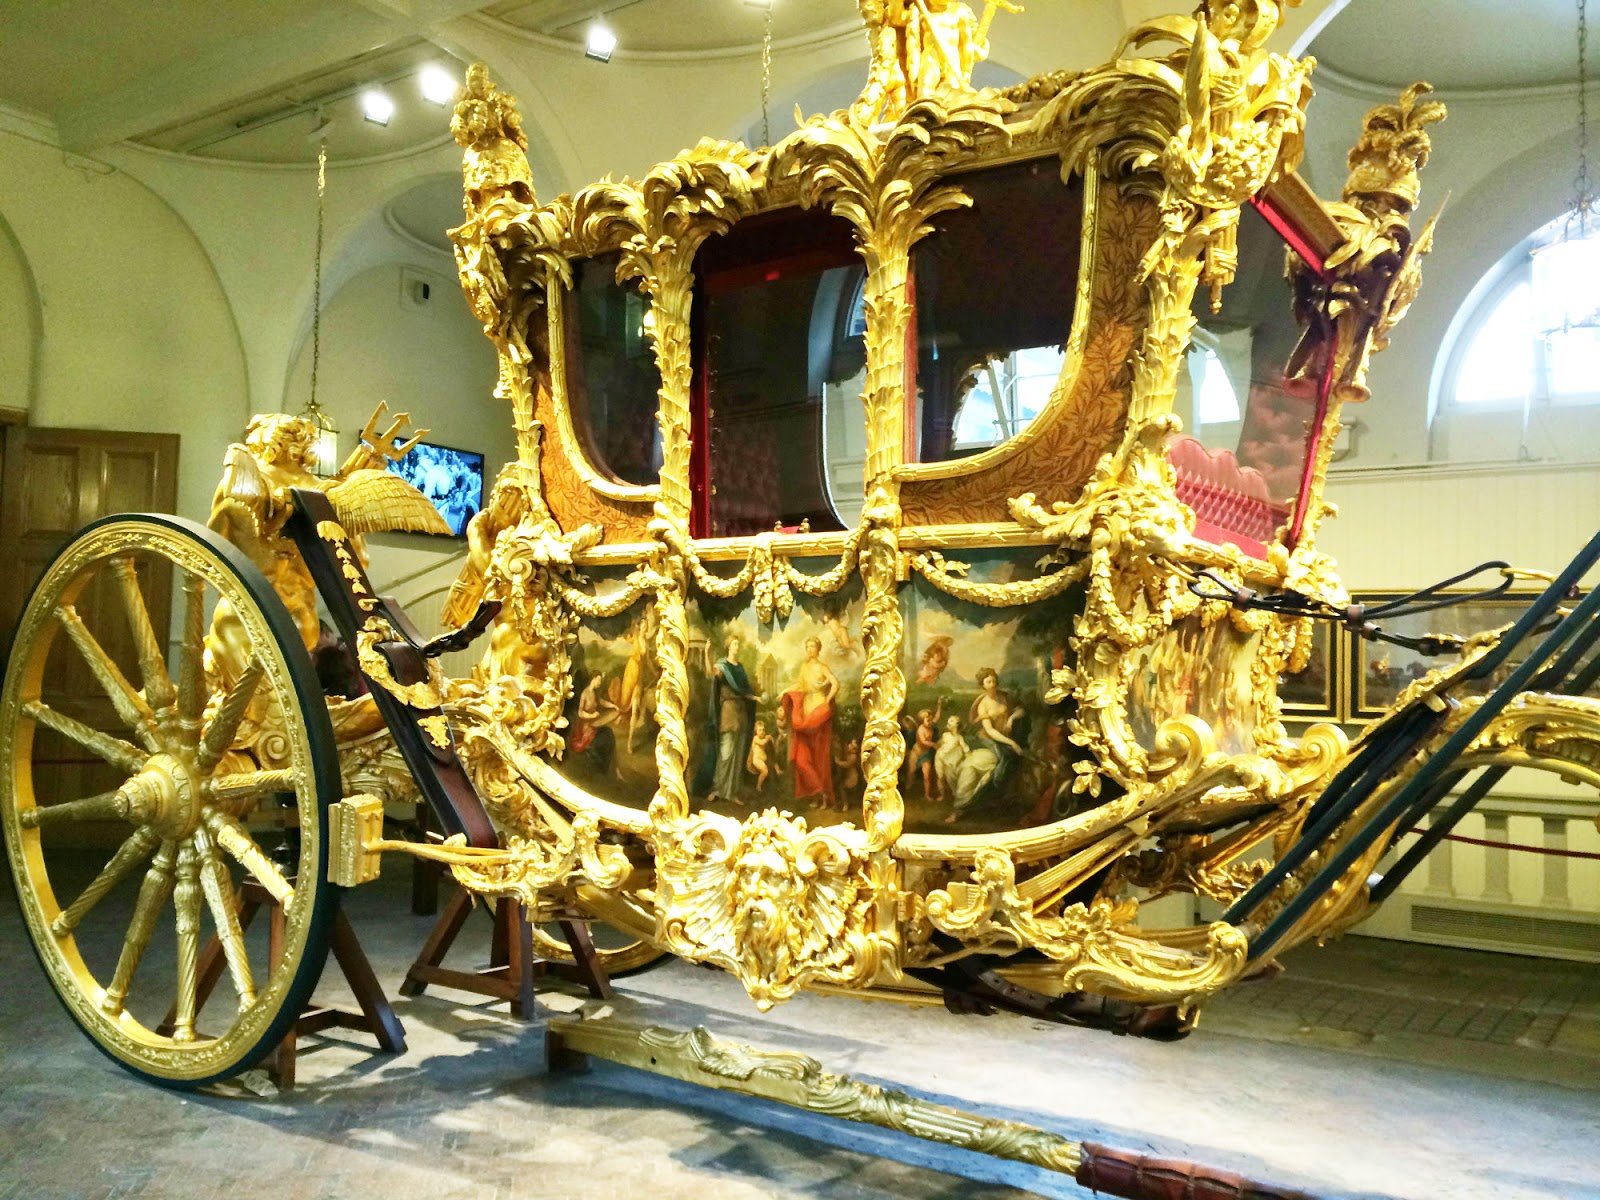 The Golden Carriage in Buckingham Palace